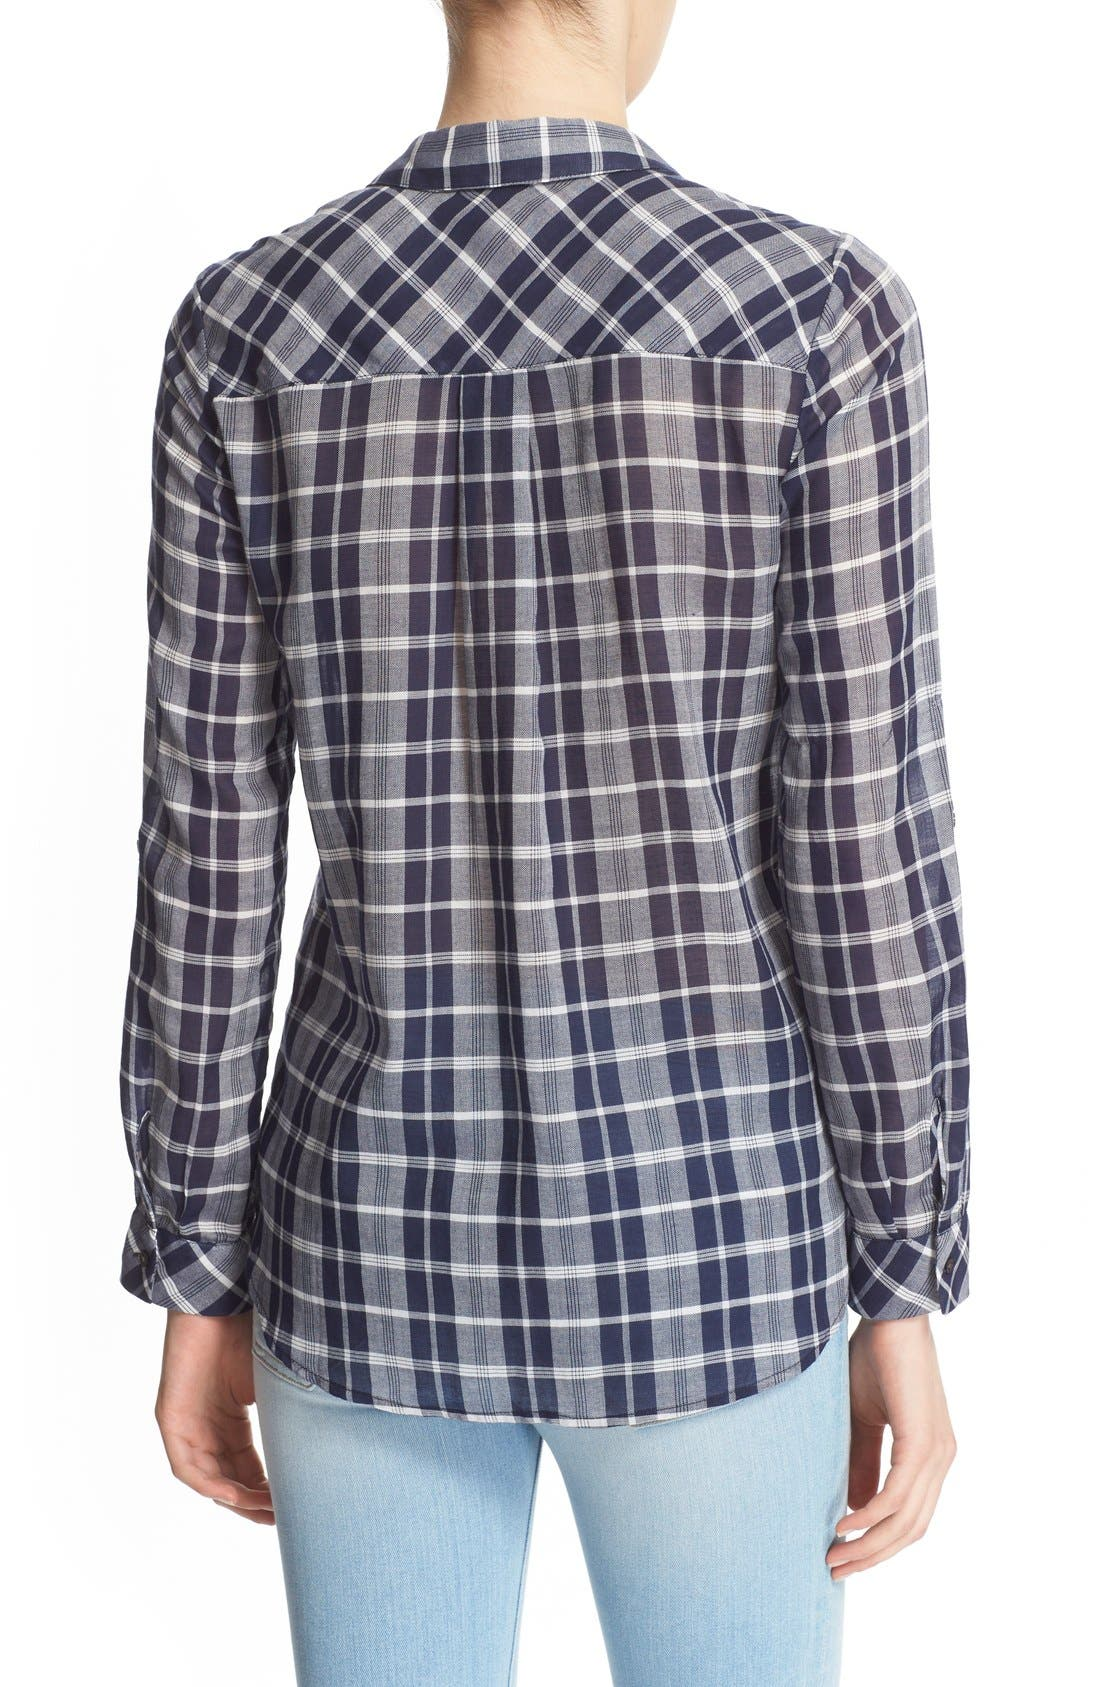 Alternate Image 2  - Soft Joie 'Daesha' Plaid Shirt